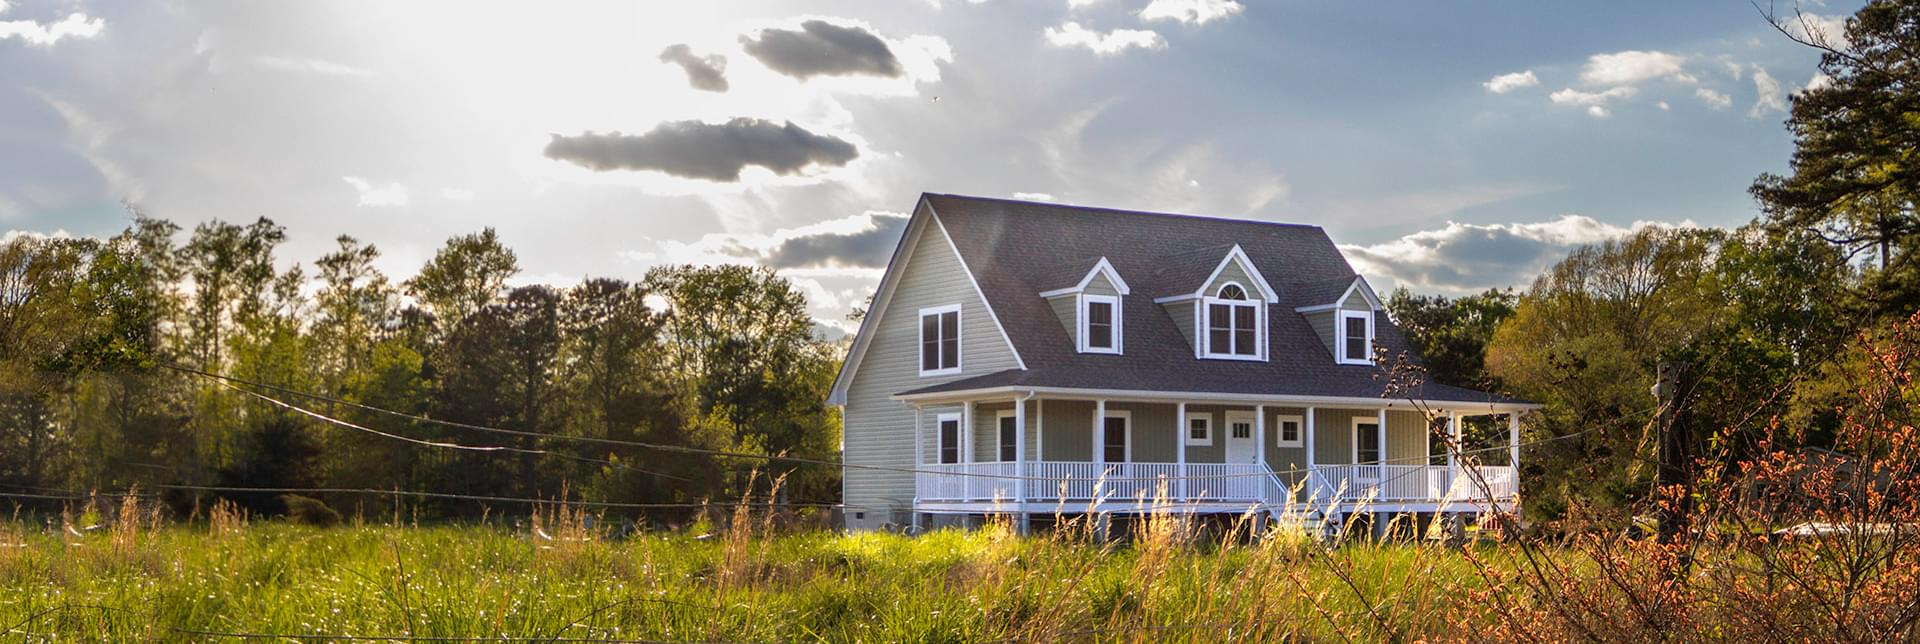 New Homes in King William County VA